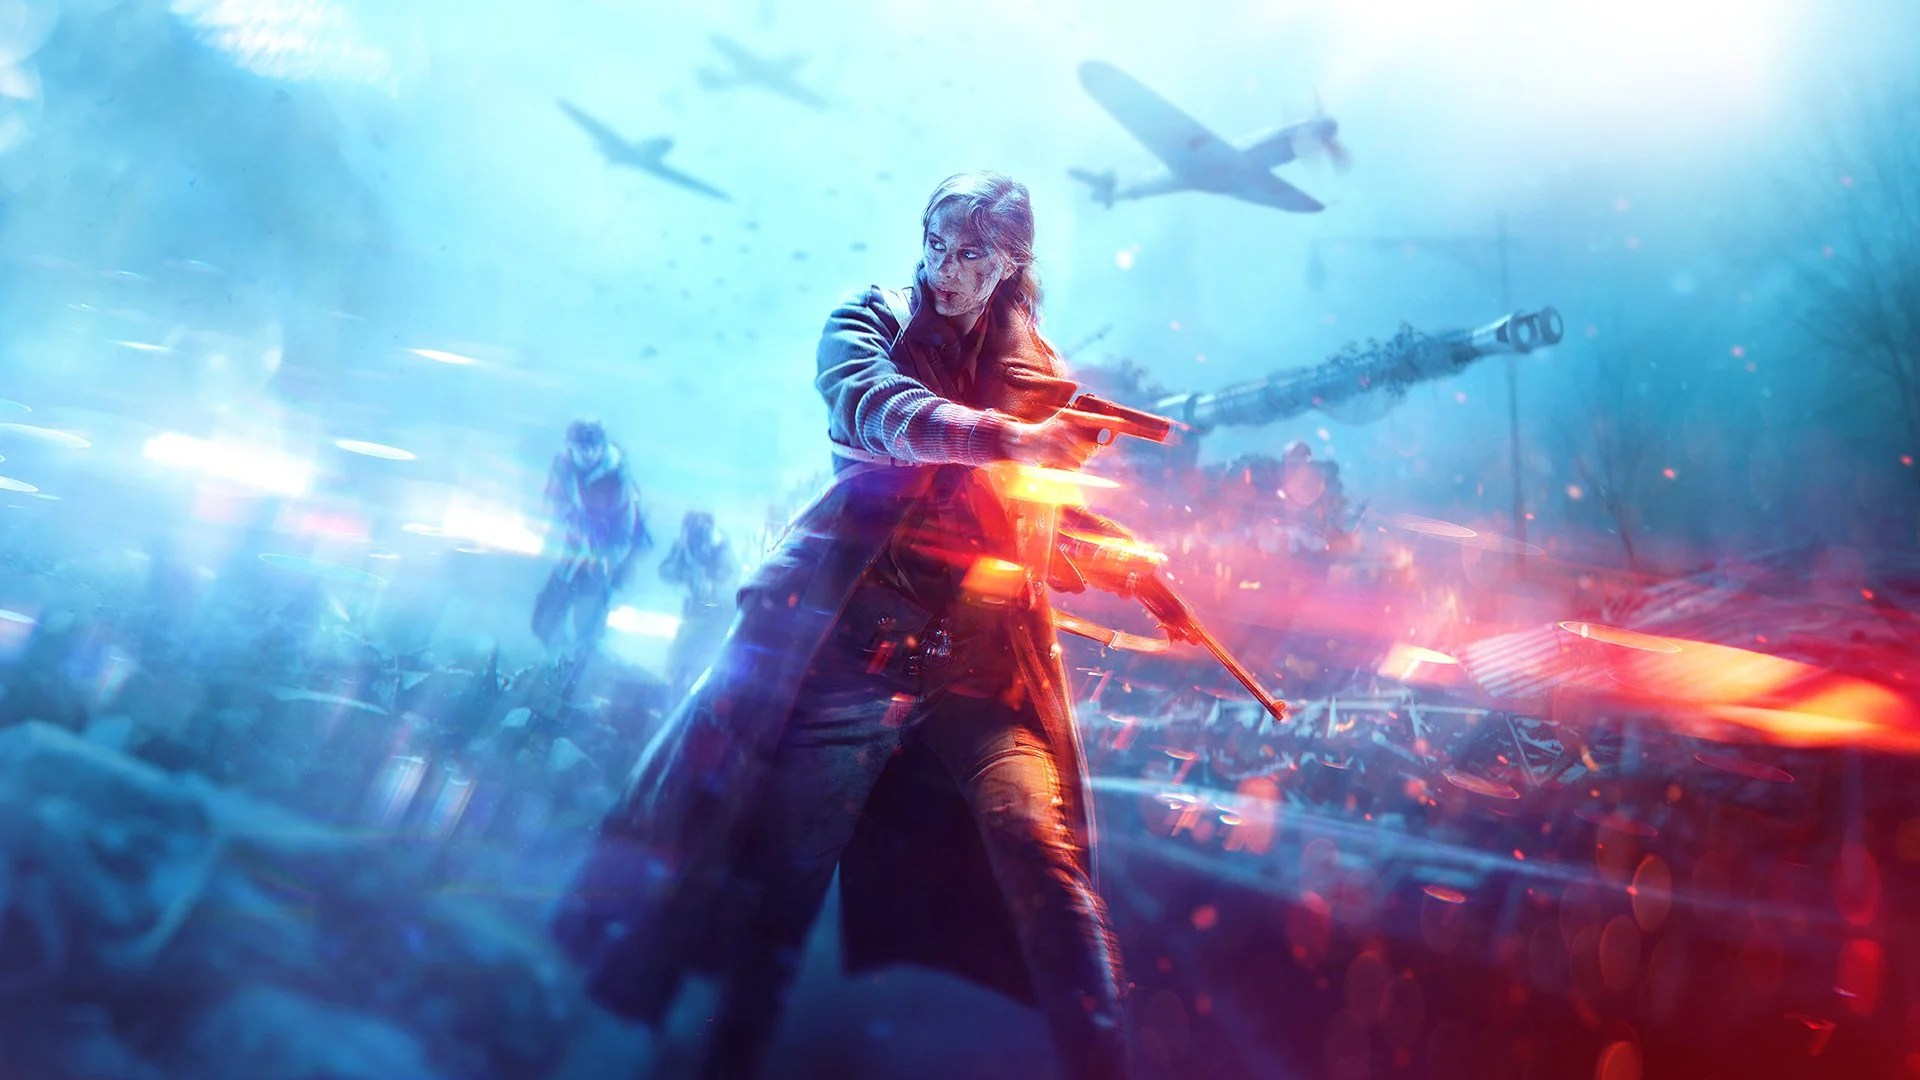 13 Things to Know About Battlefield 5